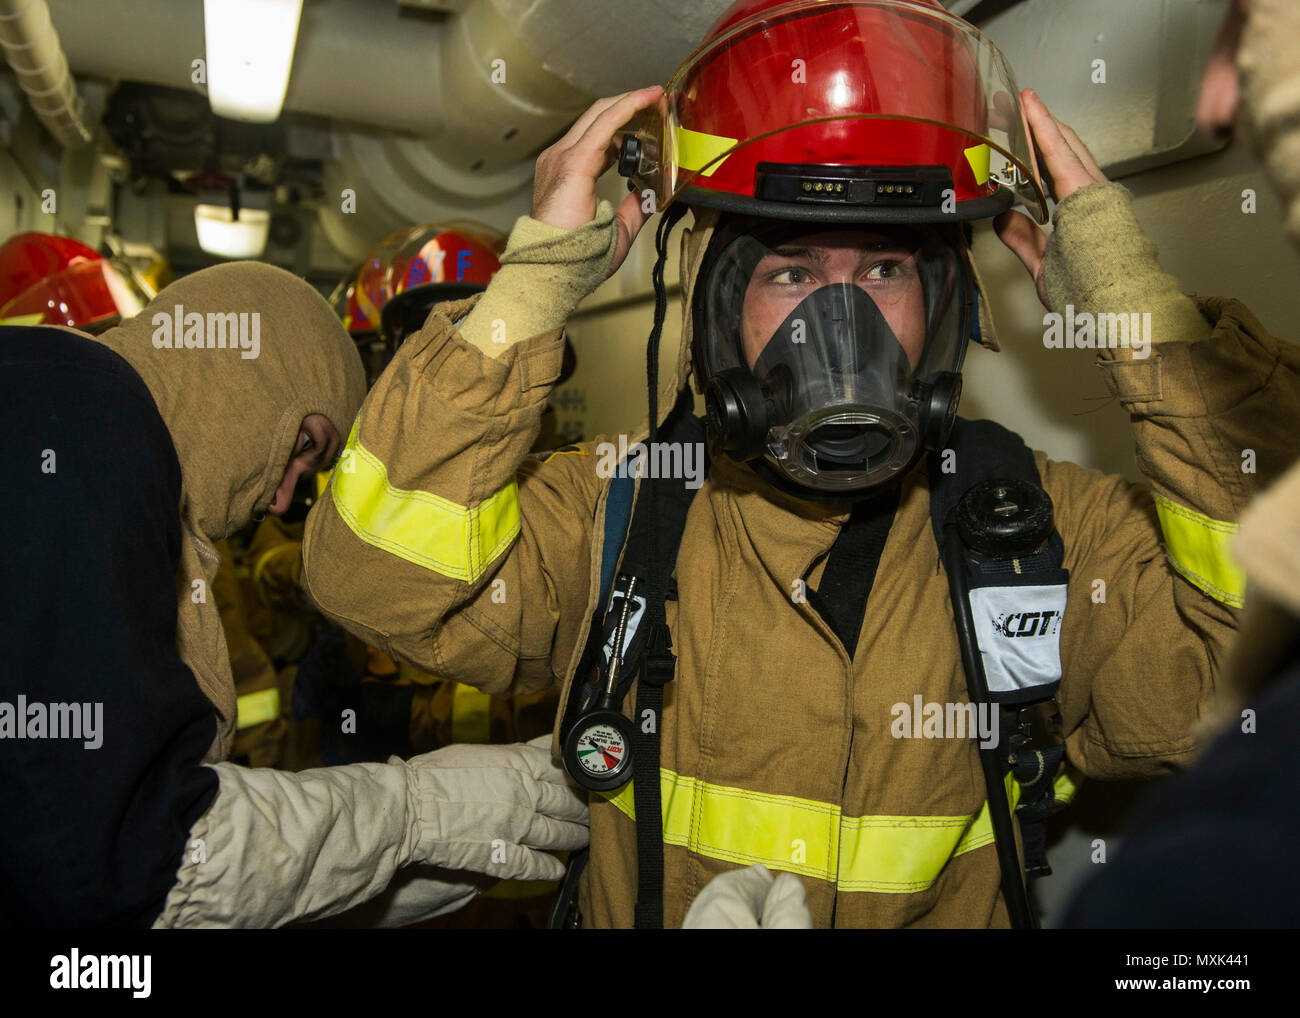 Firefighter and petty officer